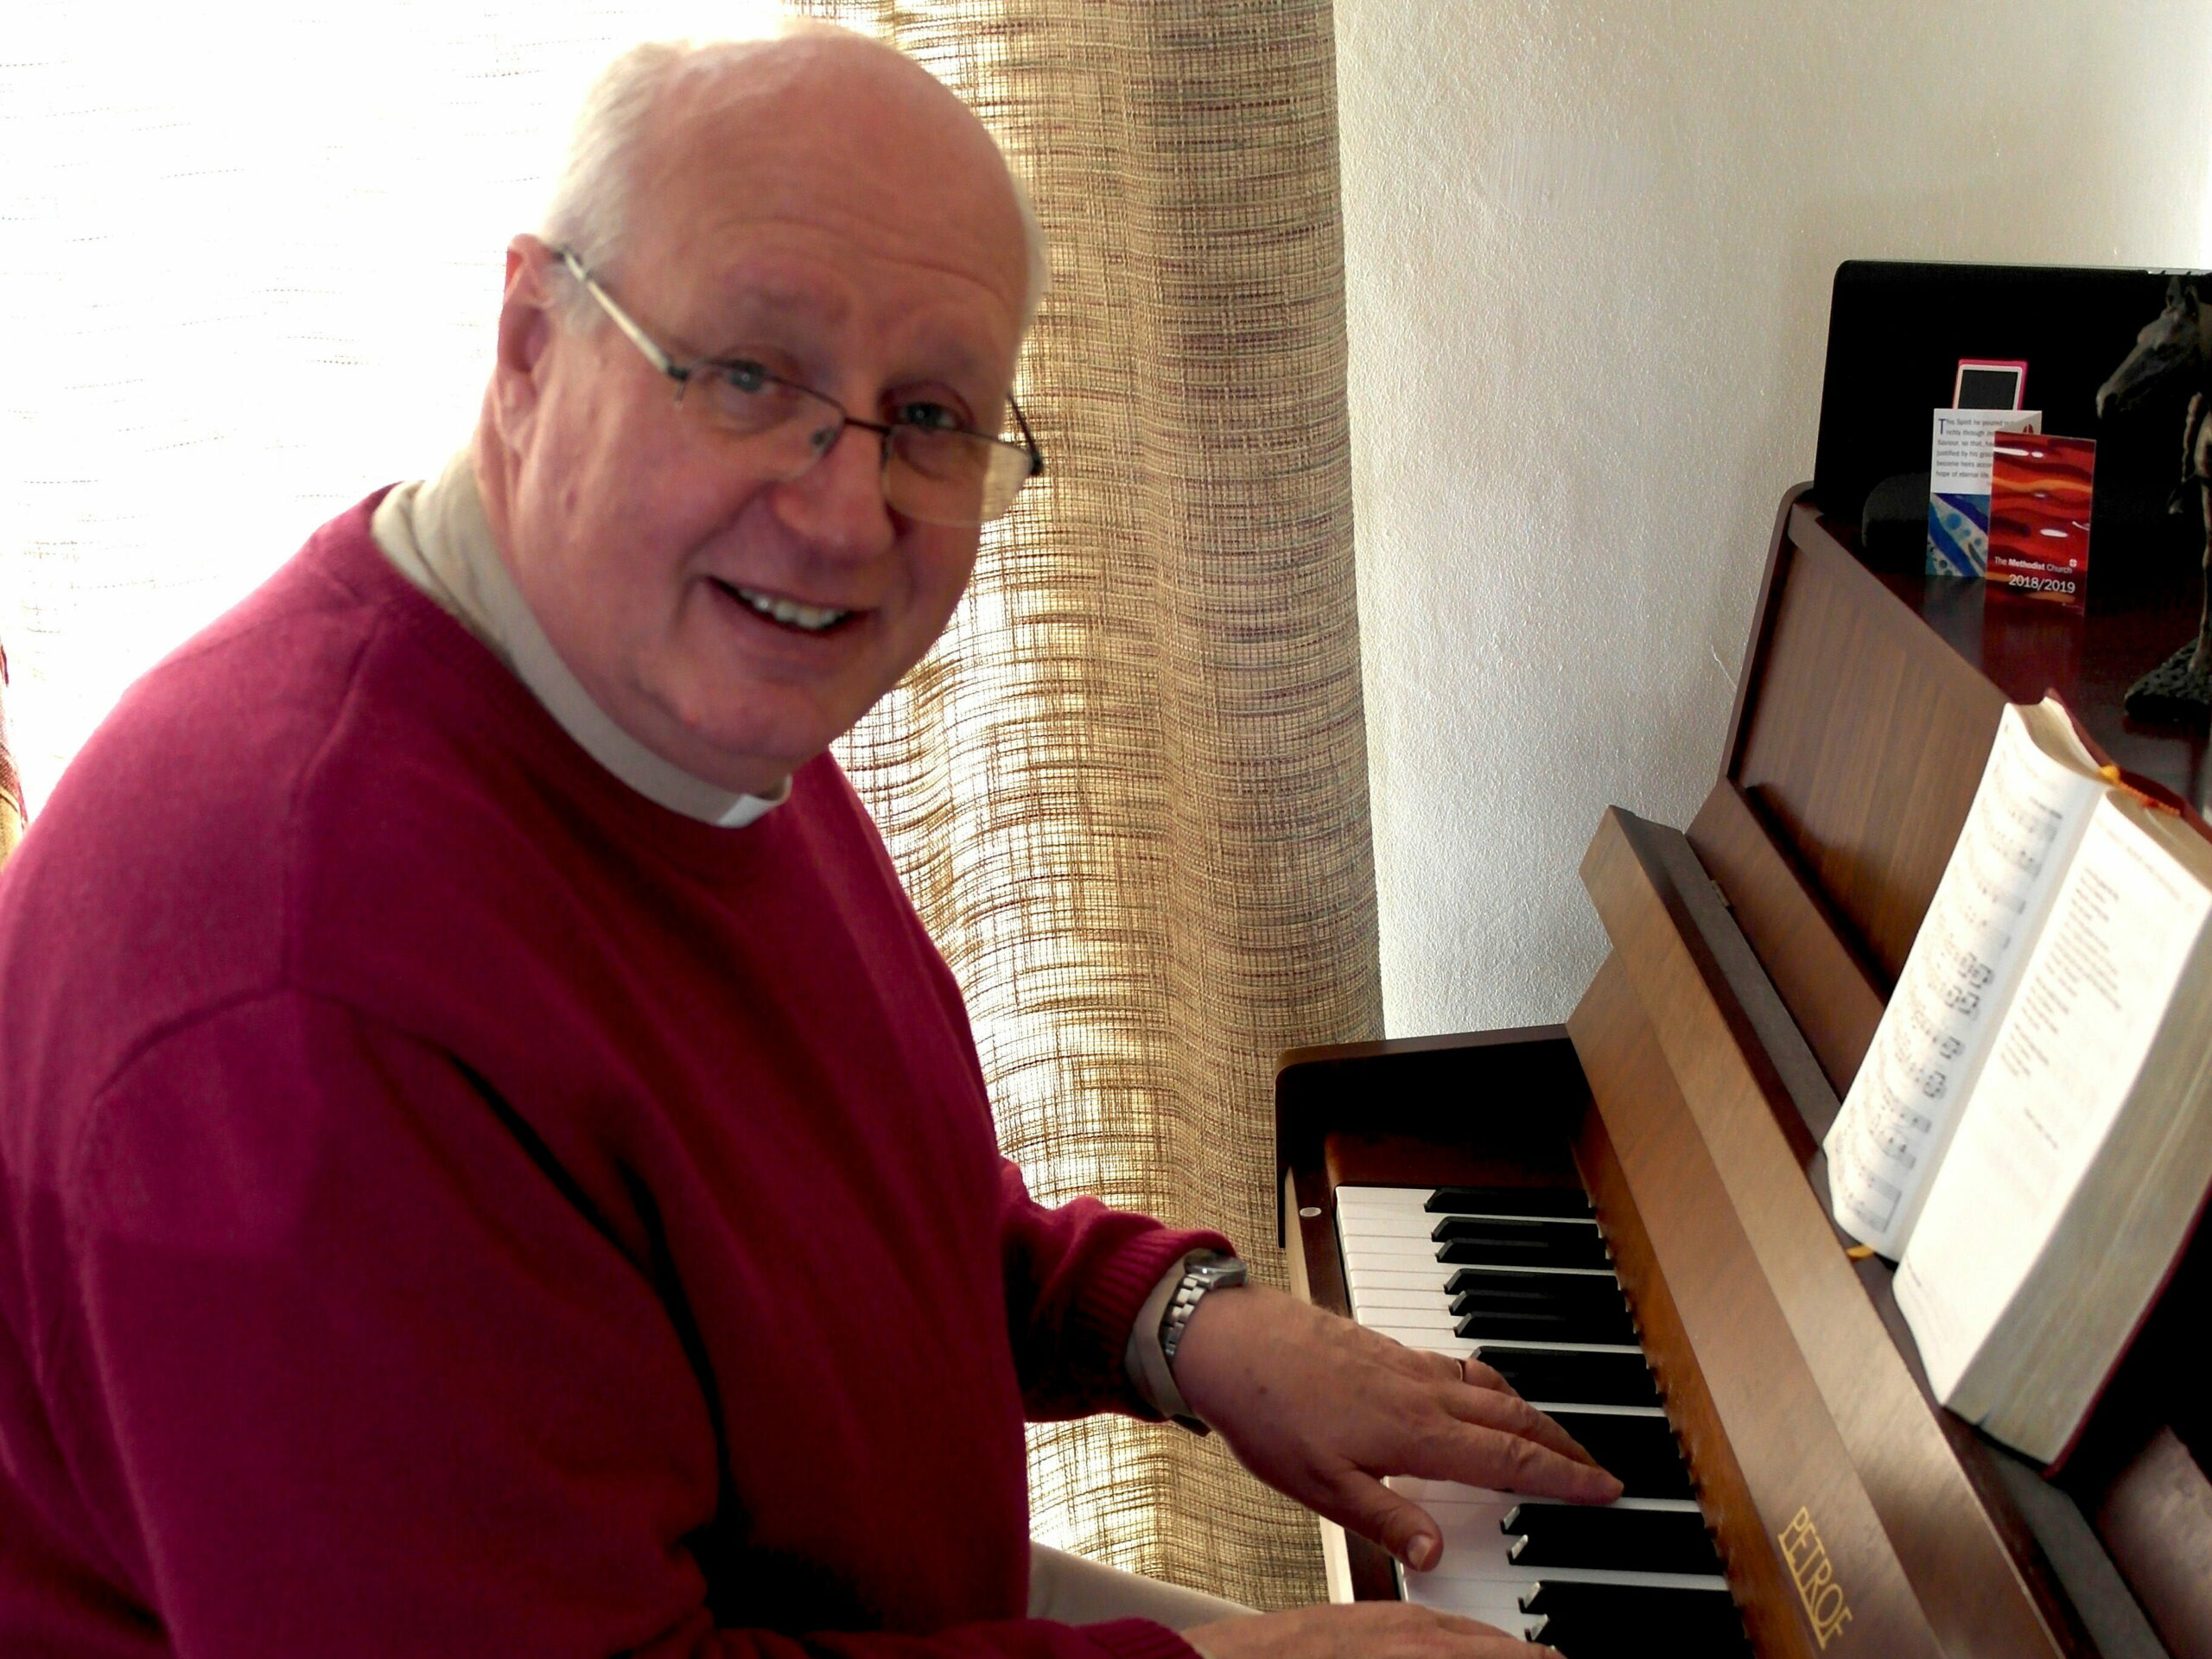 Reverend Richard Teal is playing the piano at home